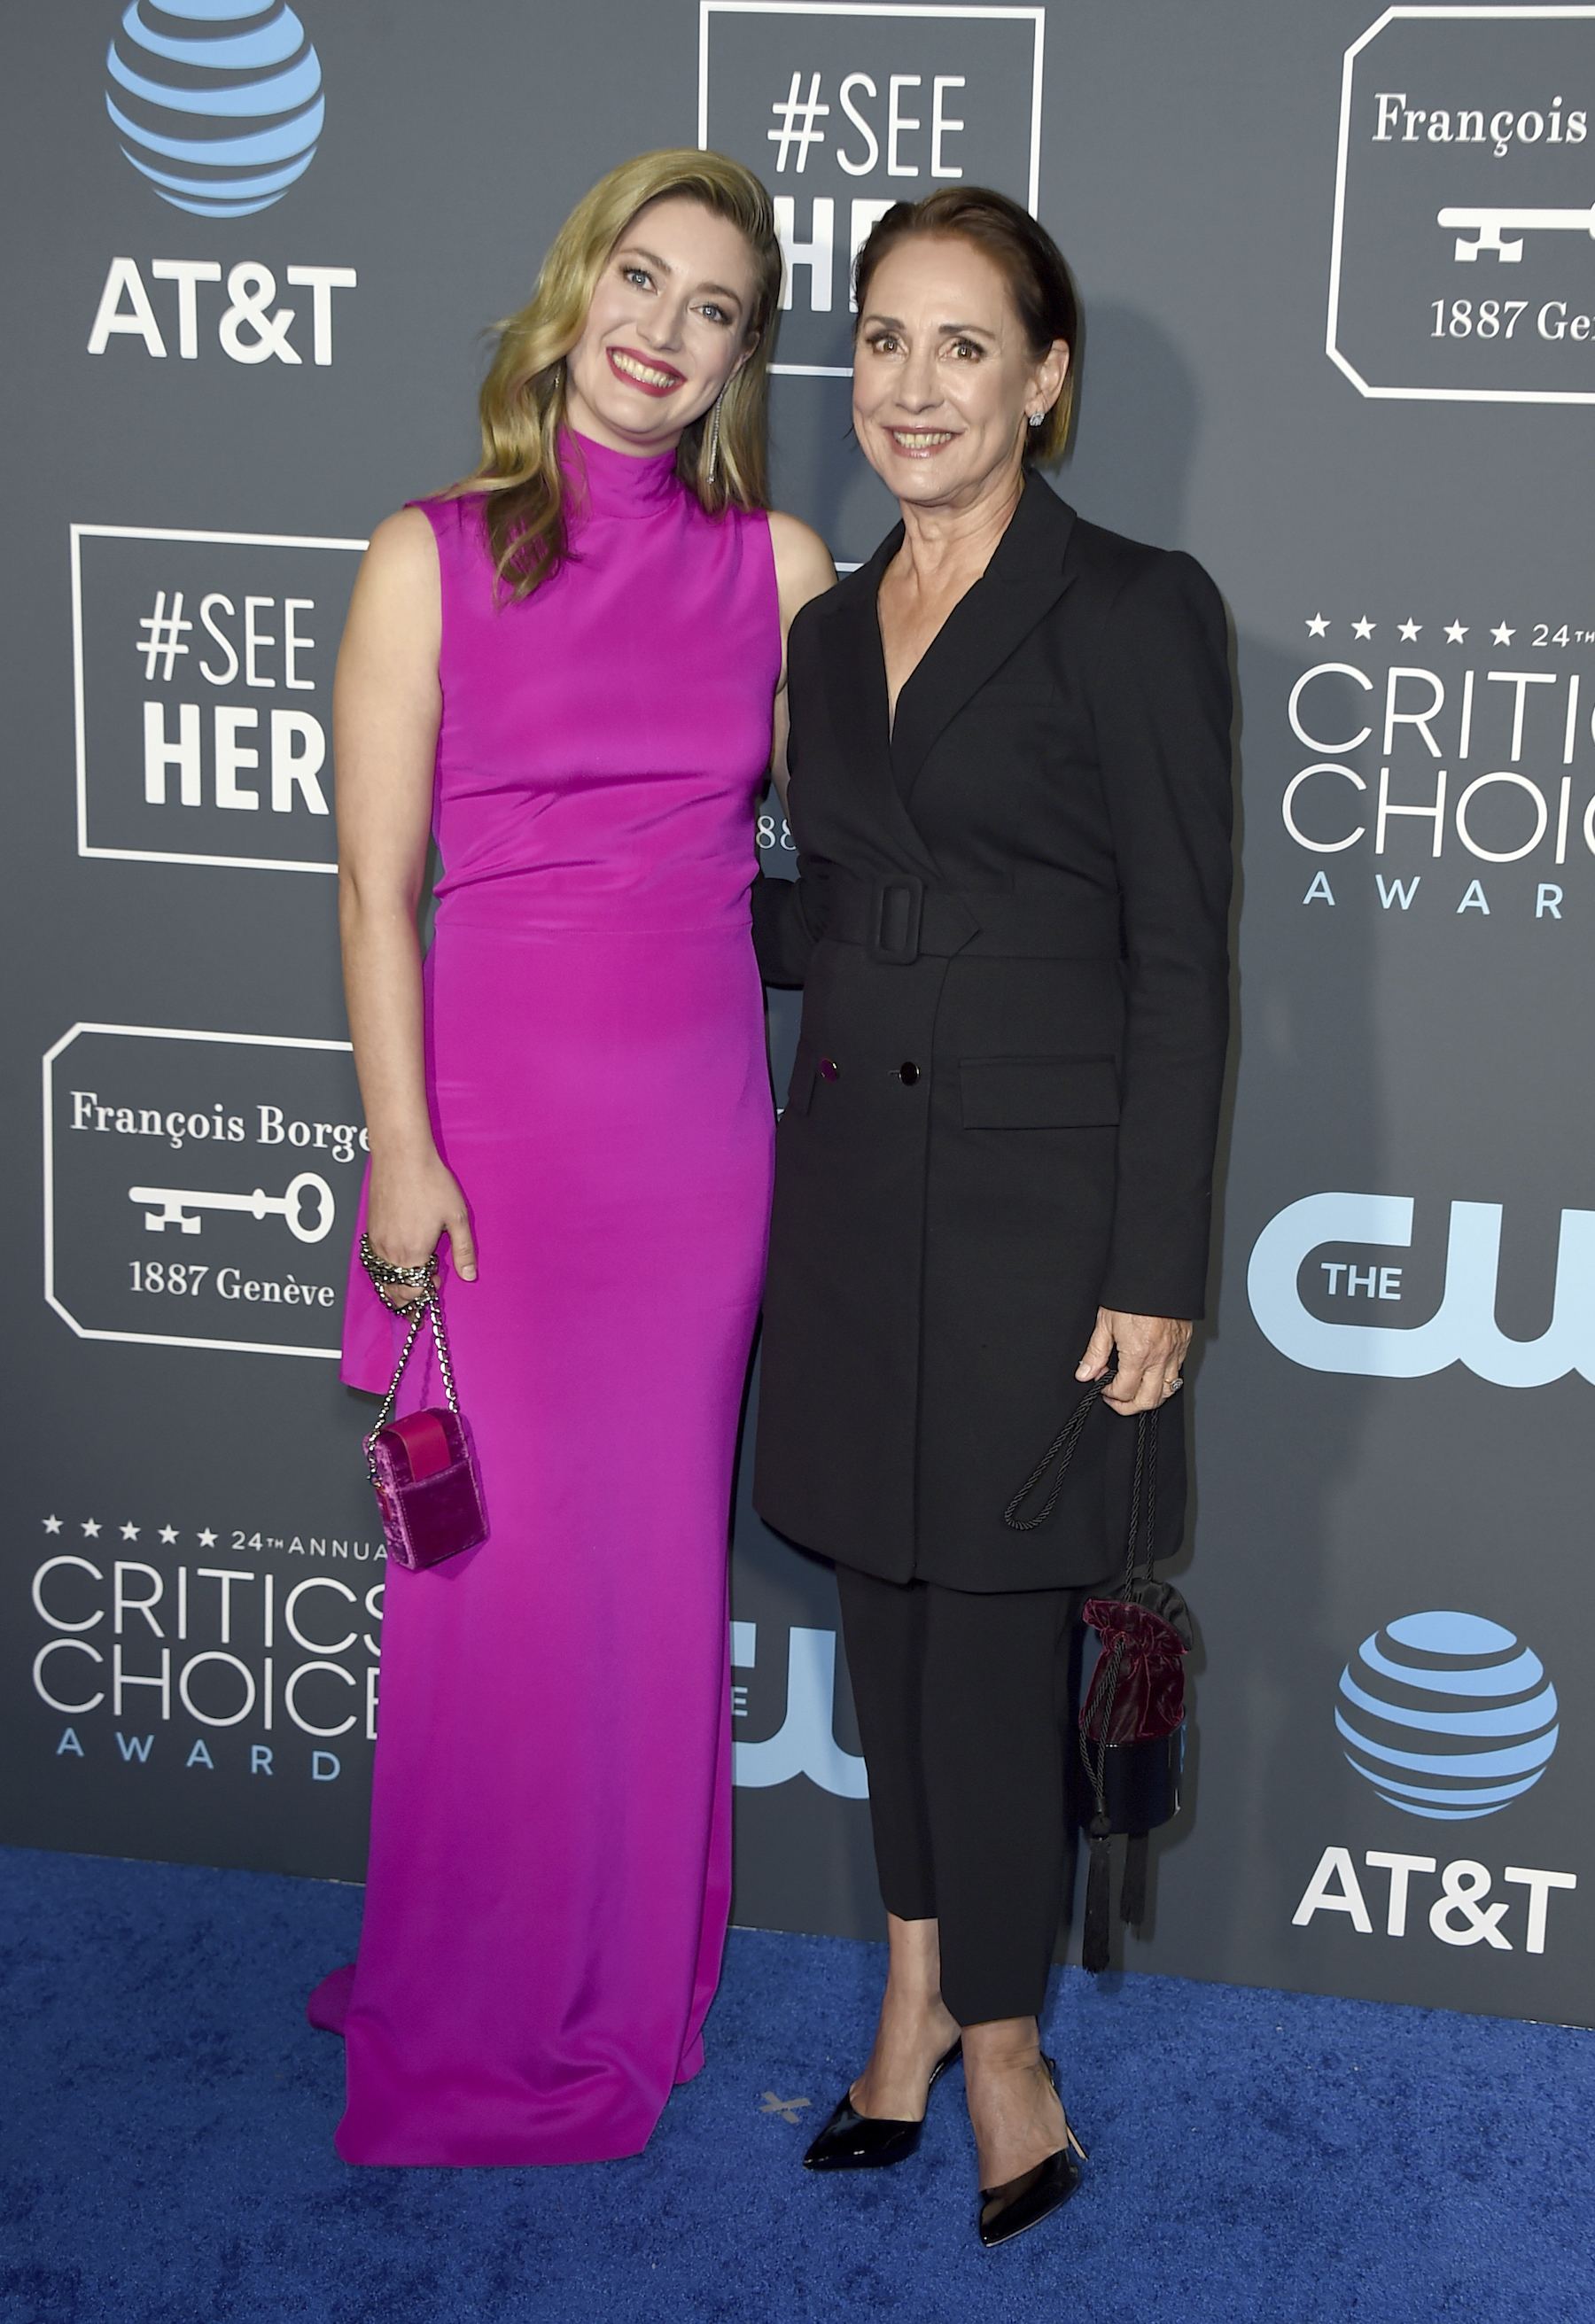 "<div class=""meta image-caption""><div class=""origin-logo origin-image ap""><span>AP</span></div><span class=""caption-text"">Laurie Metcalf, right, and her daughter Zoe Perry arrive at the 24th annual Critics' Choice Awards on Sunday, Jan. 13, 2019, at the Barker Hangar in Santa Monica, Calif. (Jordan Strauss/Invision/AP)</span></div>"